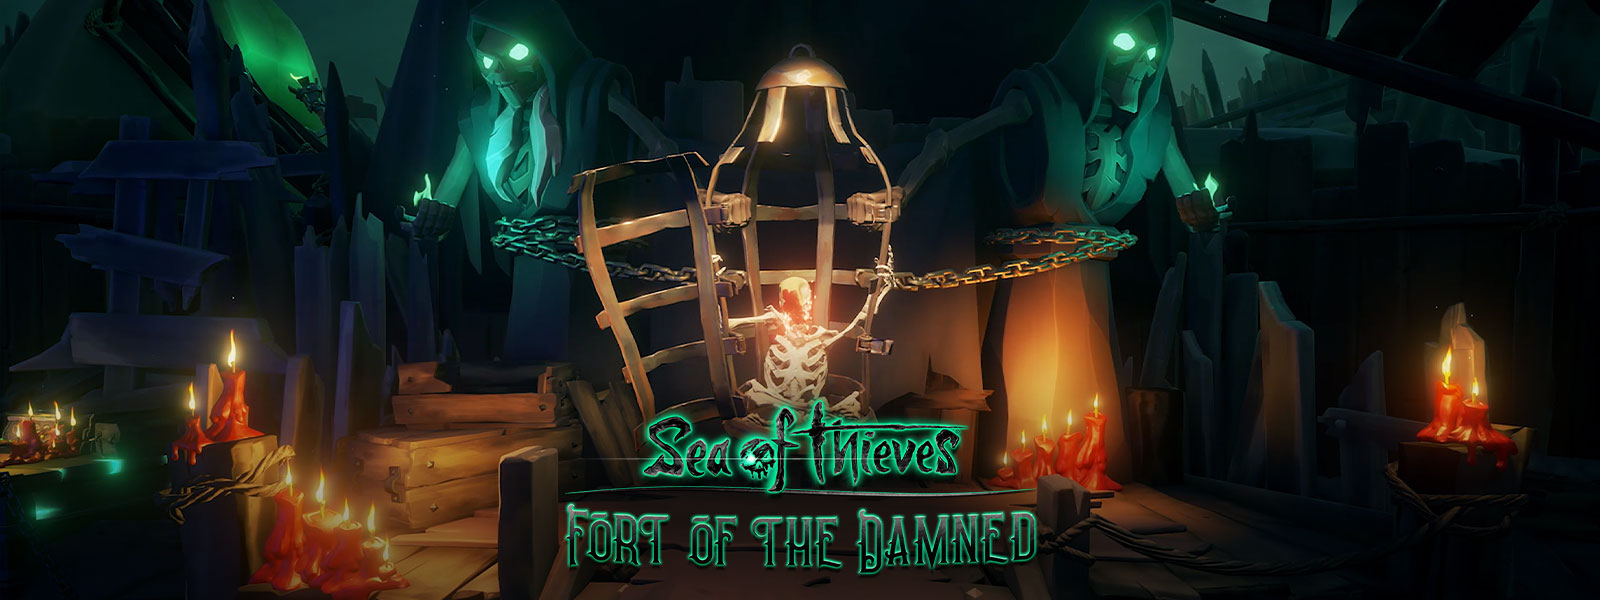 Логотип Sea of Thieves Fort of the Damned в помещении со скелетом в поломанной клетке и двумя огромными статуями скелетов в капюшонах и со светящимися зелеными глазами